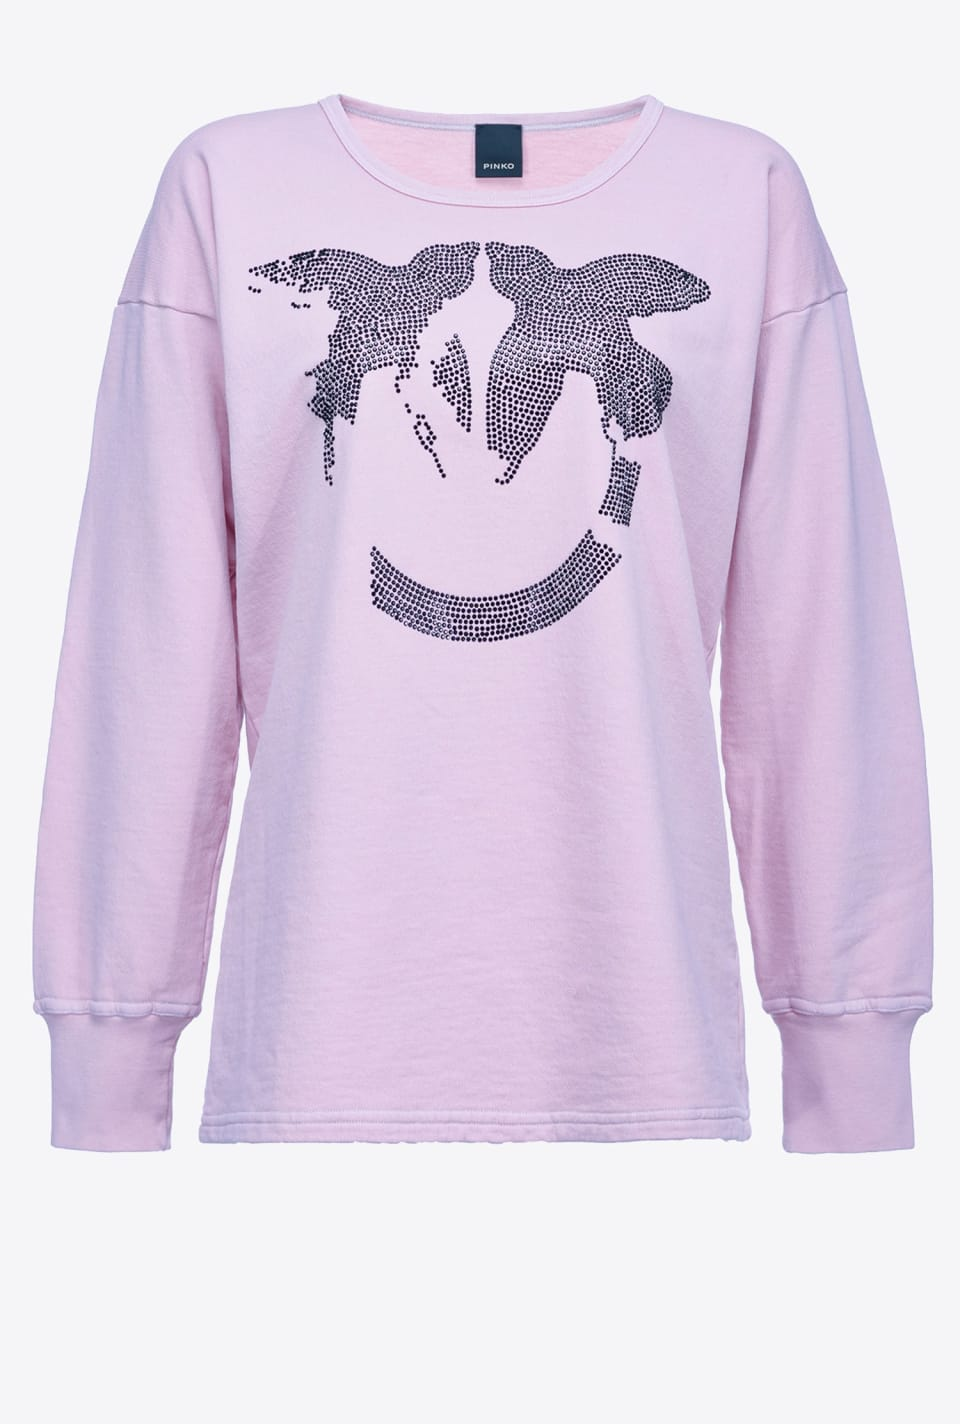 REIMAGINE black Love Birds sweatshirt - Pinko